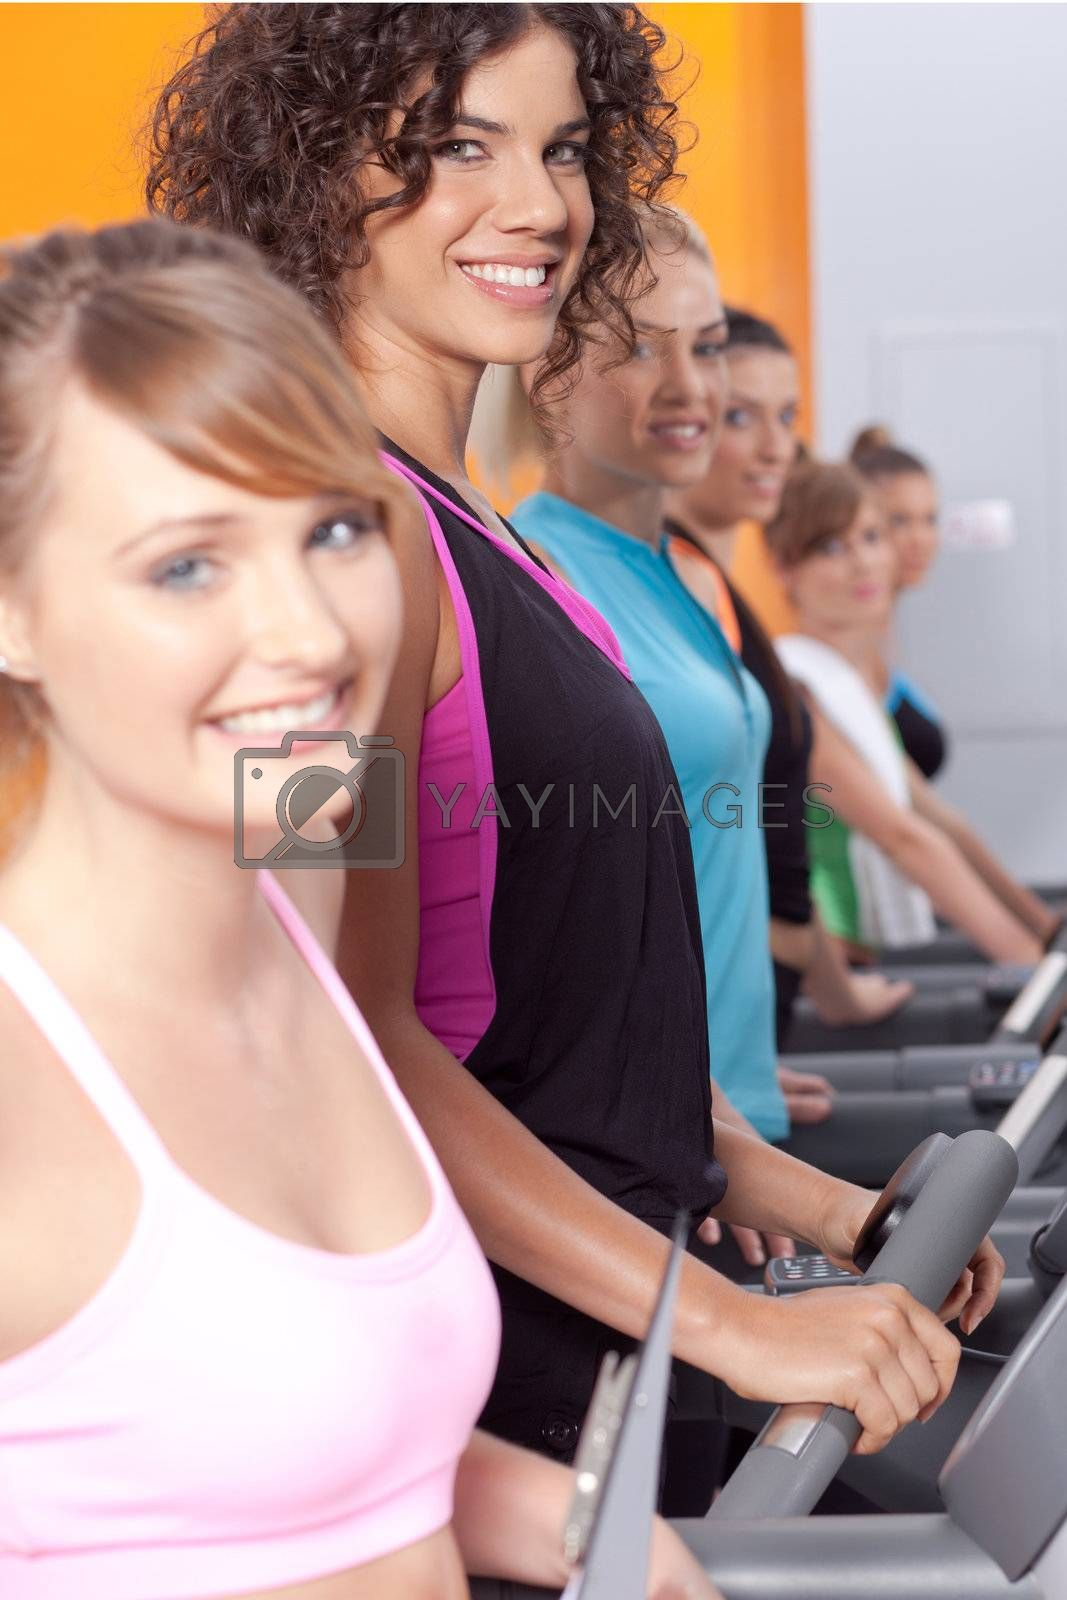 Group of young woman in the gym centre; working out.